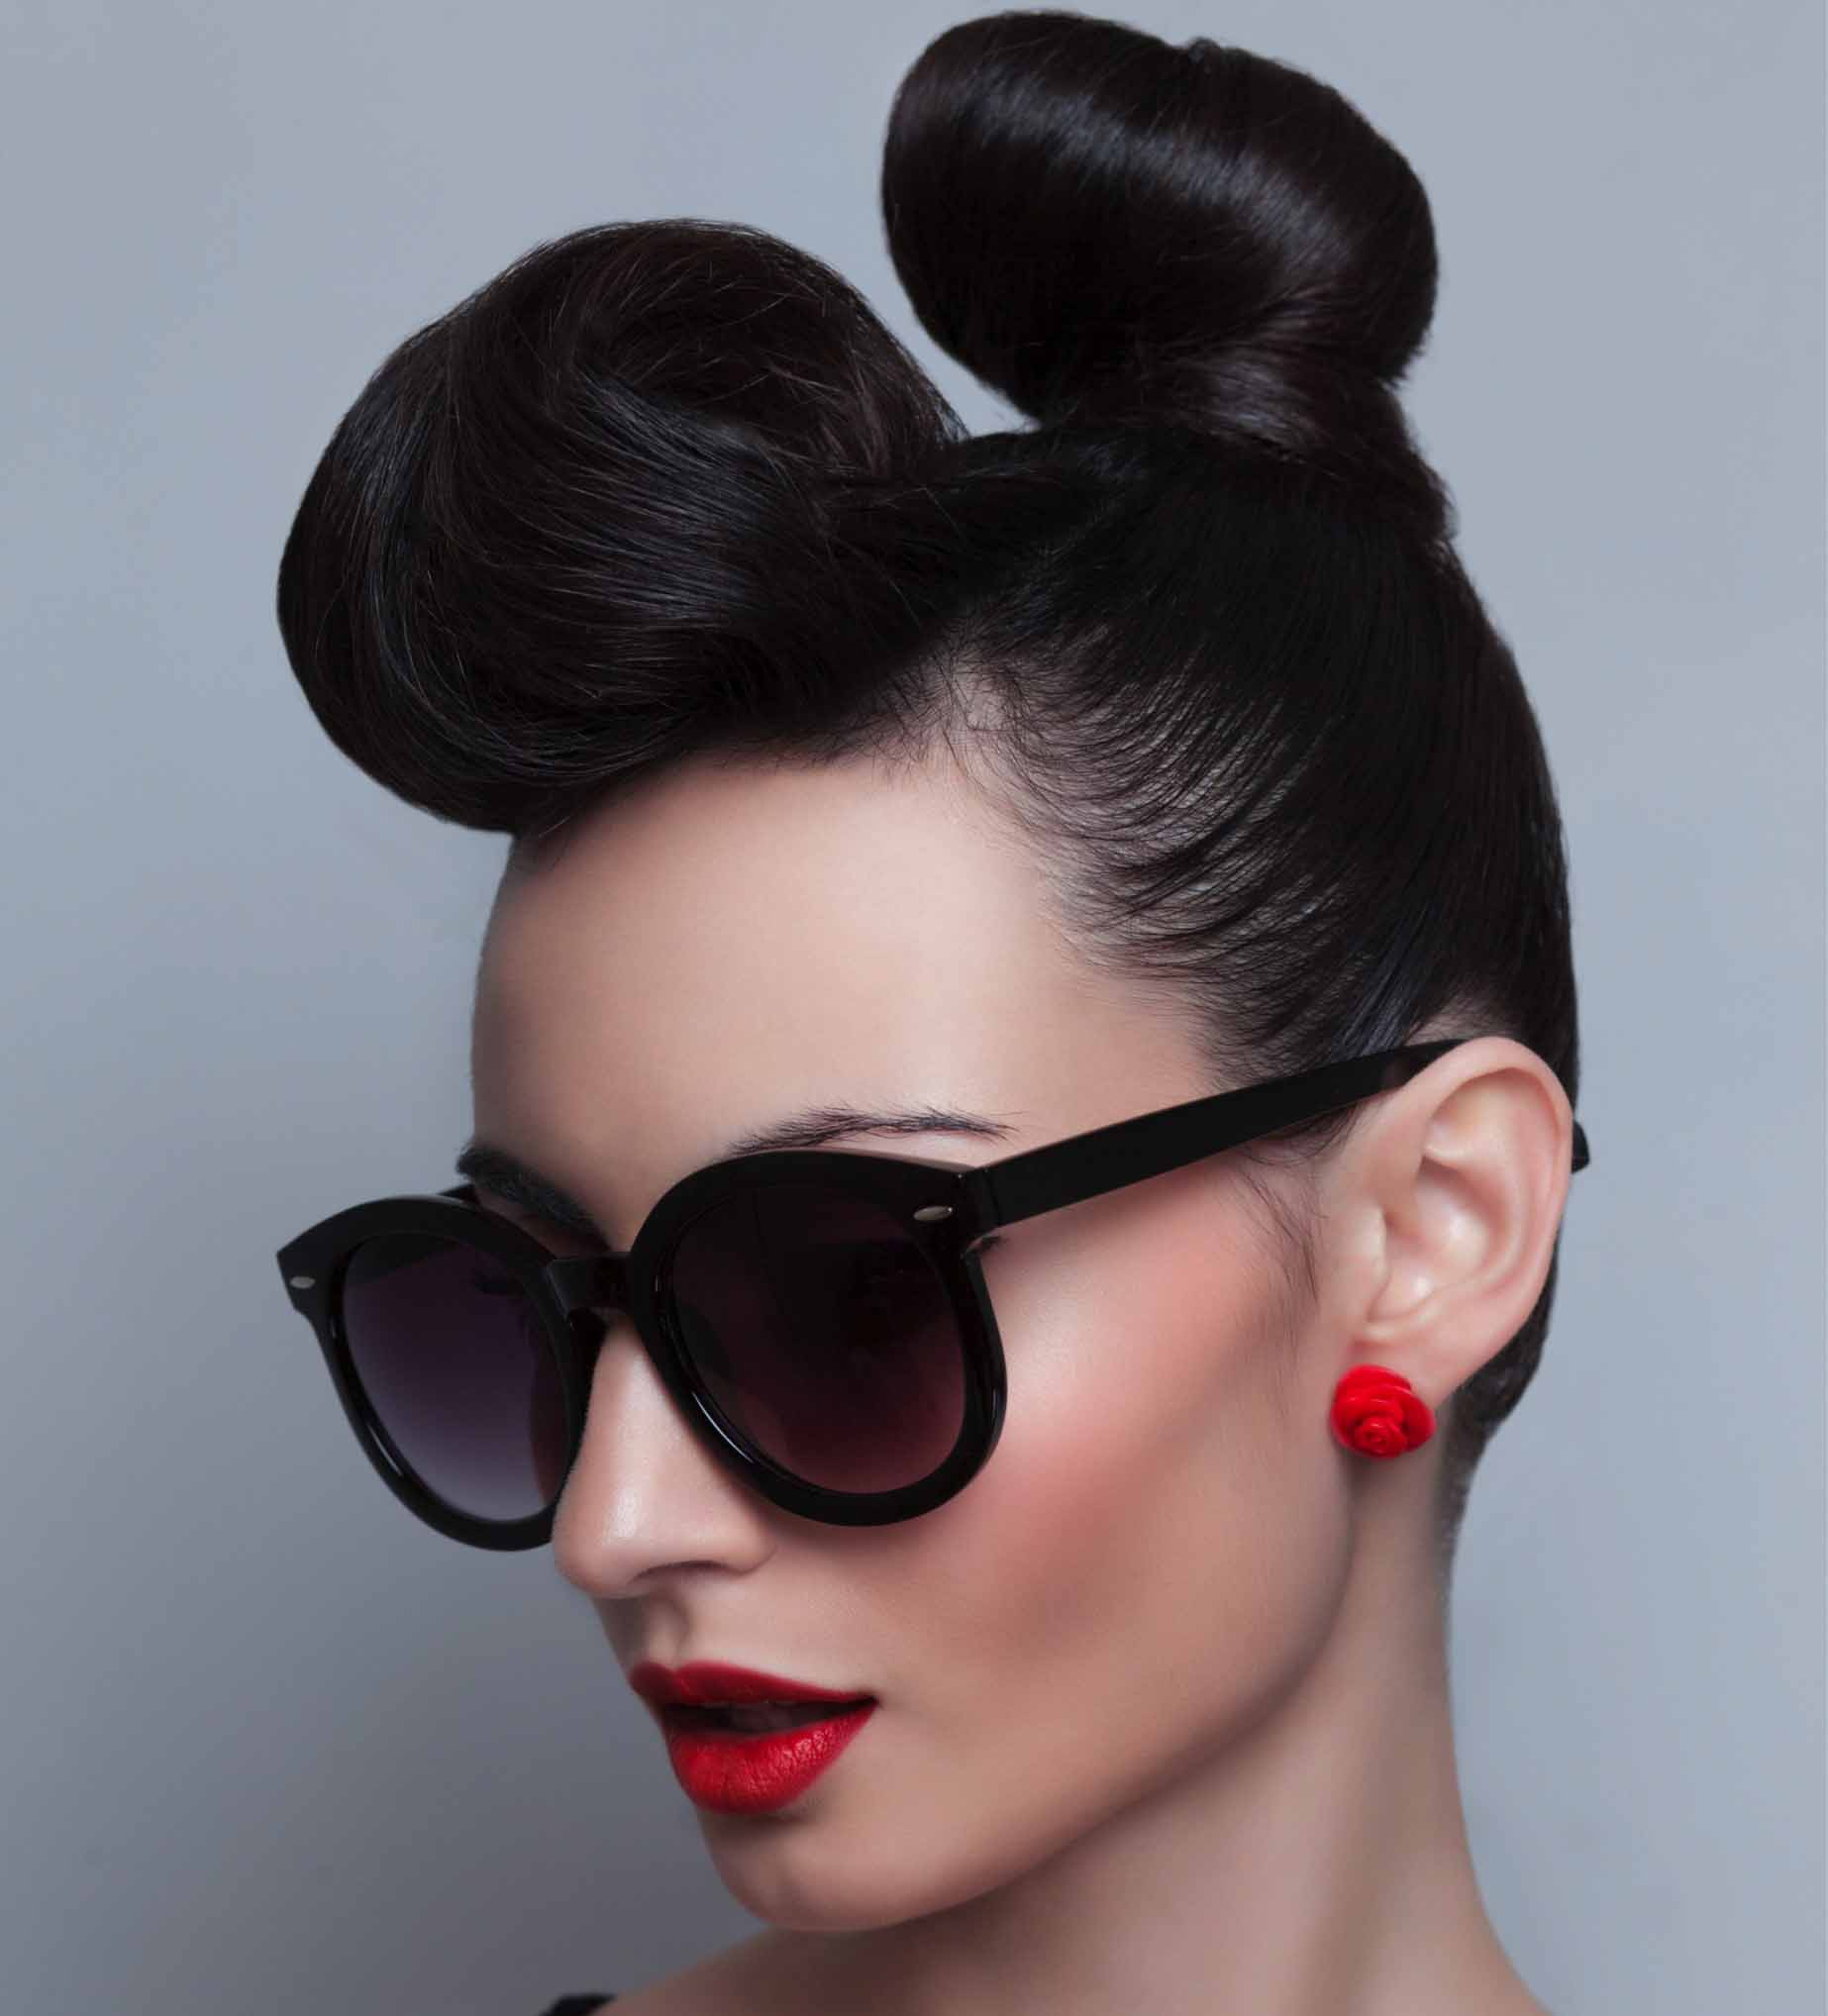 Top Knot Hair Beauty Syle